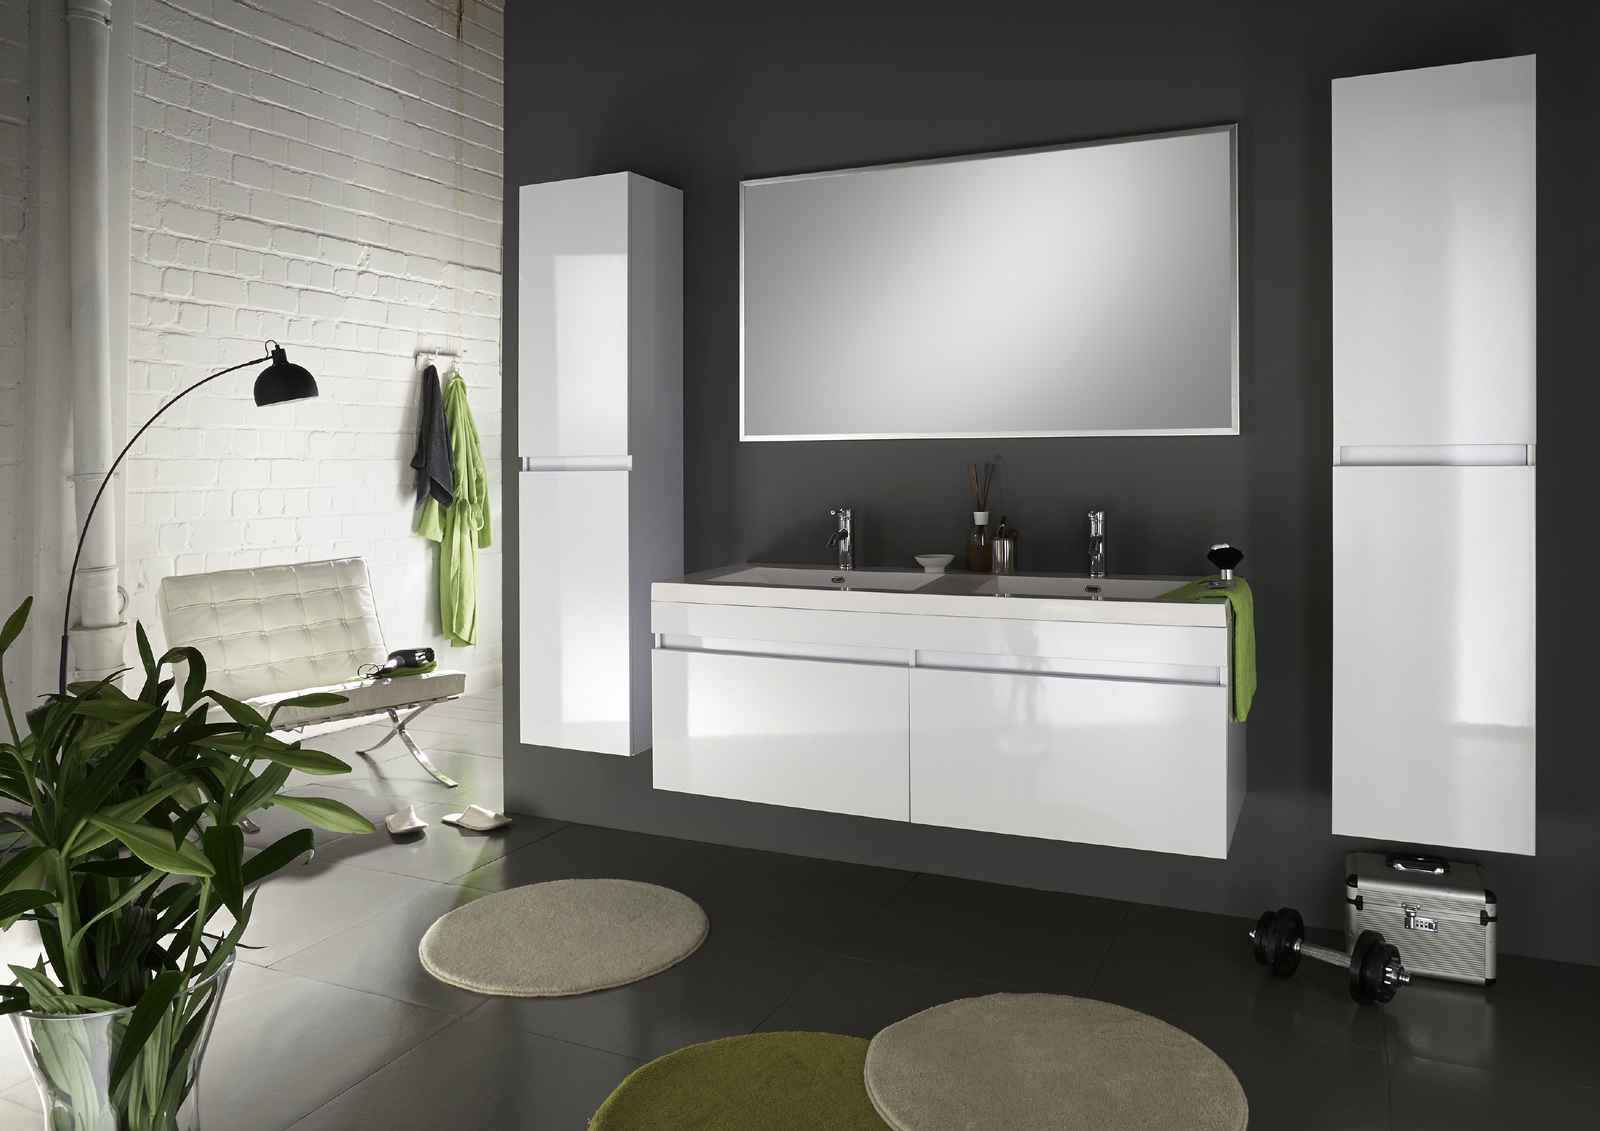 badezimmer ausstellungsst cke hausgestaltung ideen. Black Bedroom Furniture Sets. Home Design Ideas